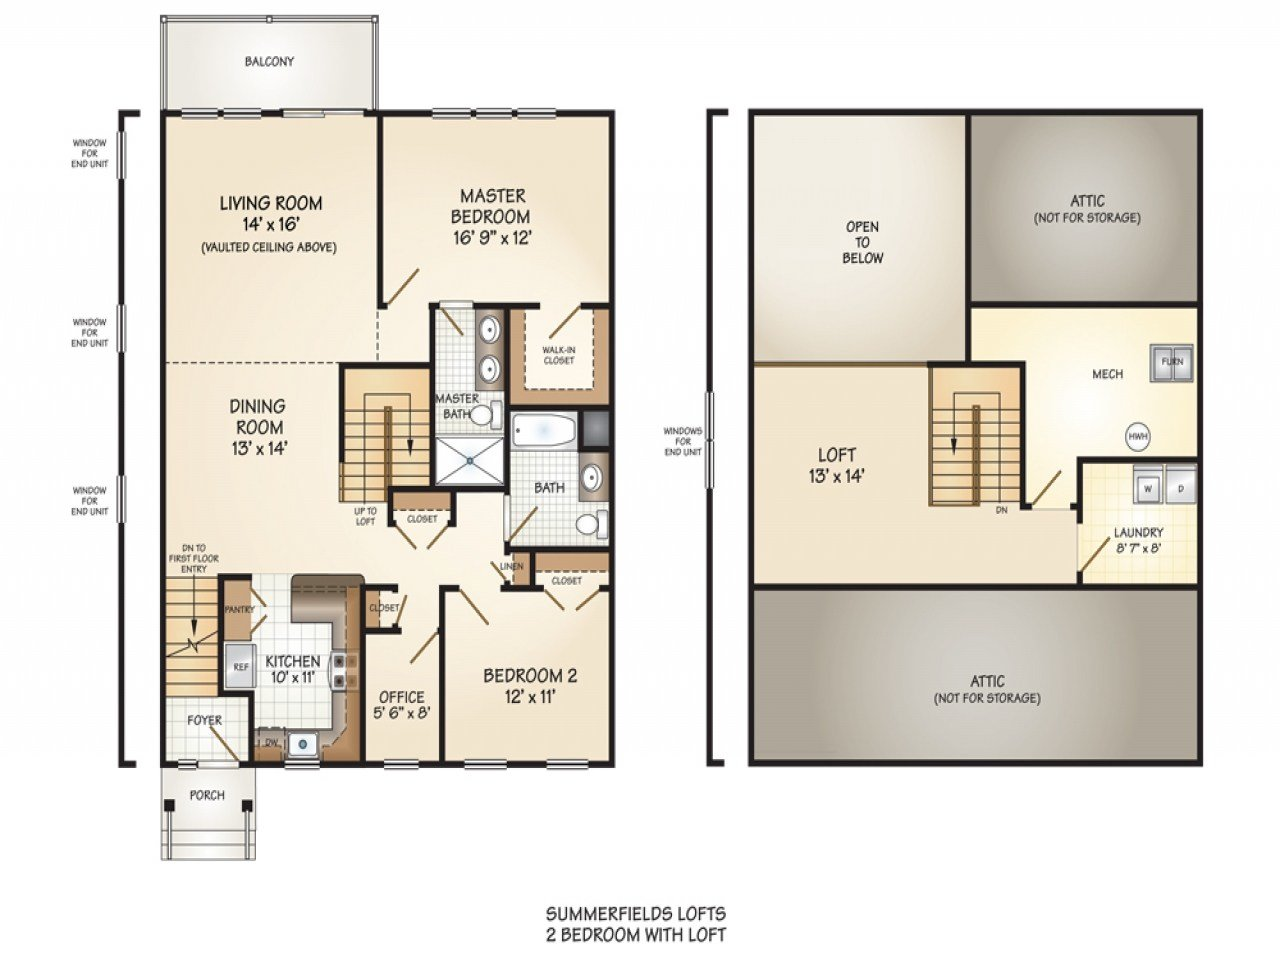 Best 2 Bedroom Floor Plan With Loft 2 Bedroom House Simple Plan 2 Bedroom Loft Floor Plans With Pictures